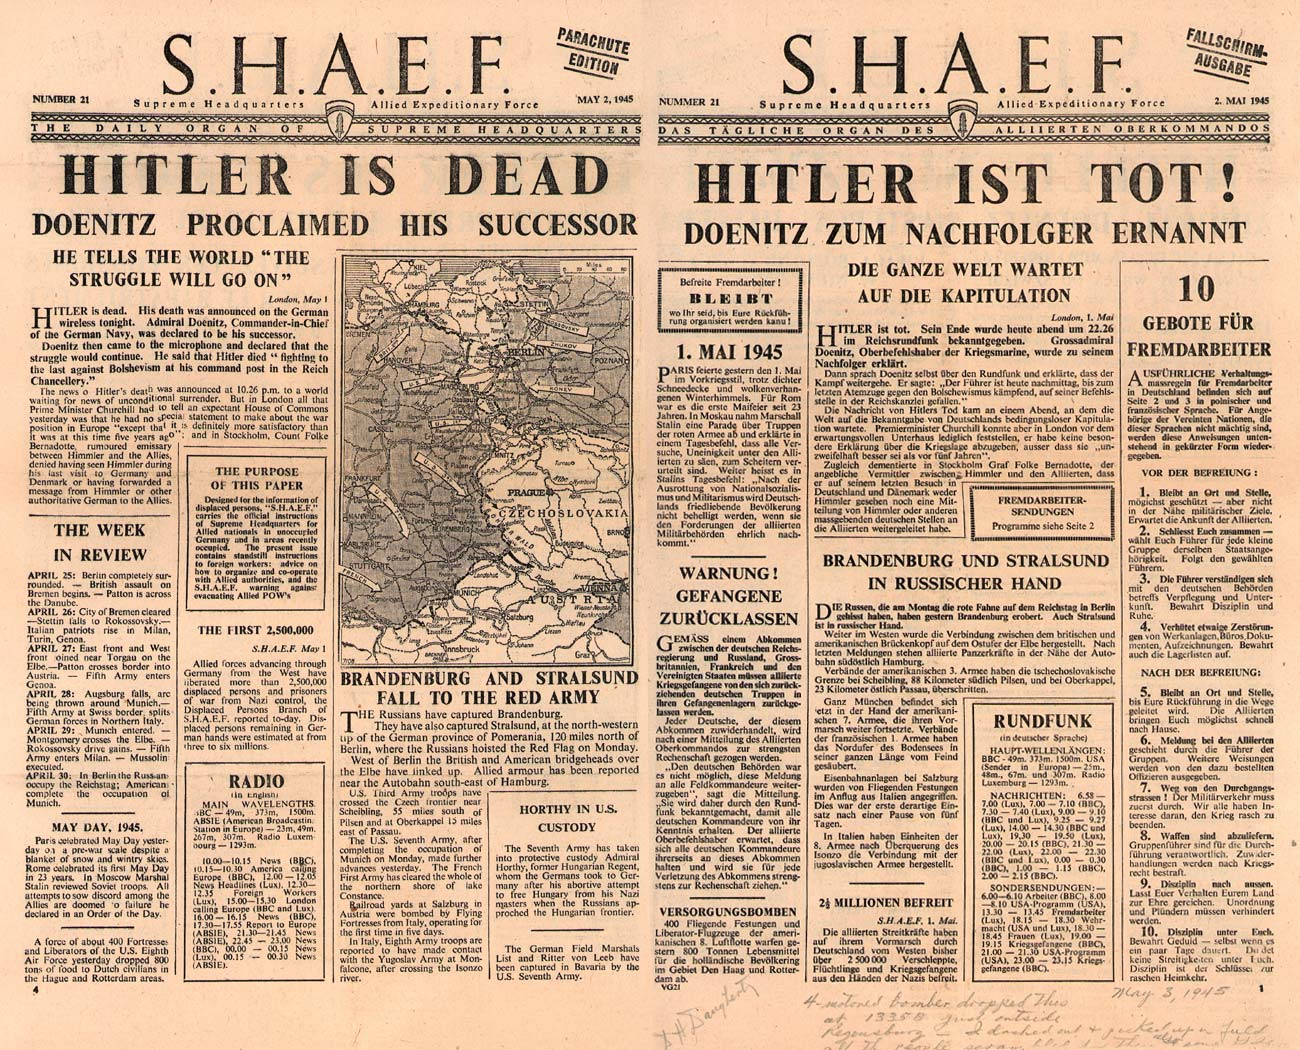 Random PSYOP leaflet - S.H.A.E.F. Newspaper, No. 21, 2 May 1945 - HITLER IS DEAD